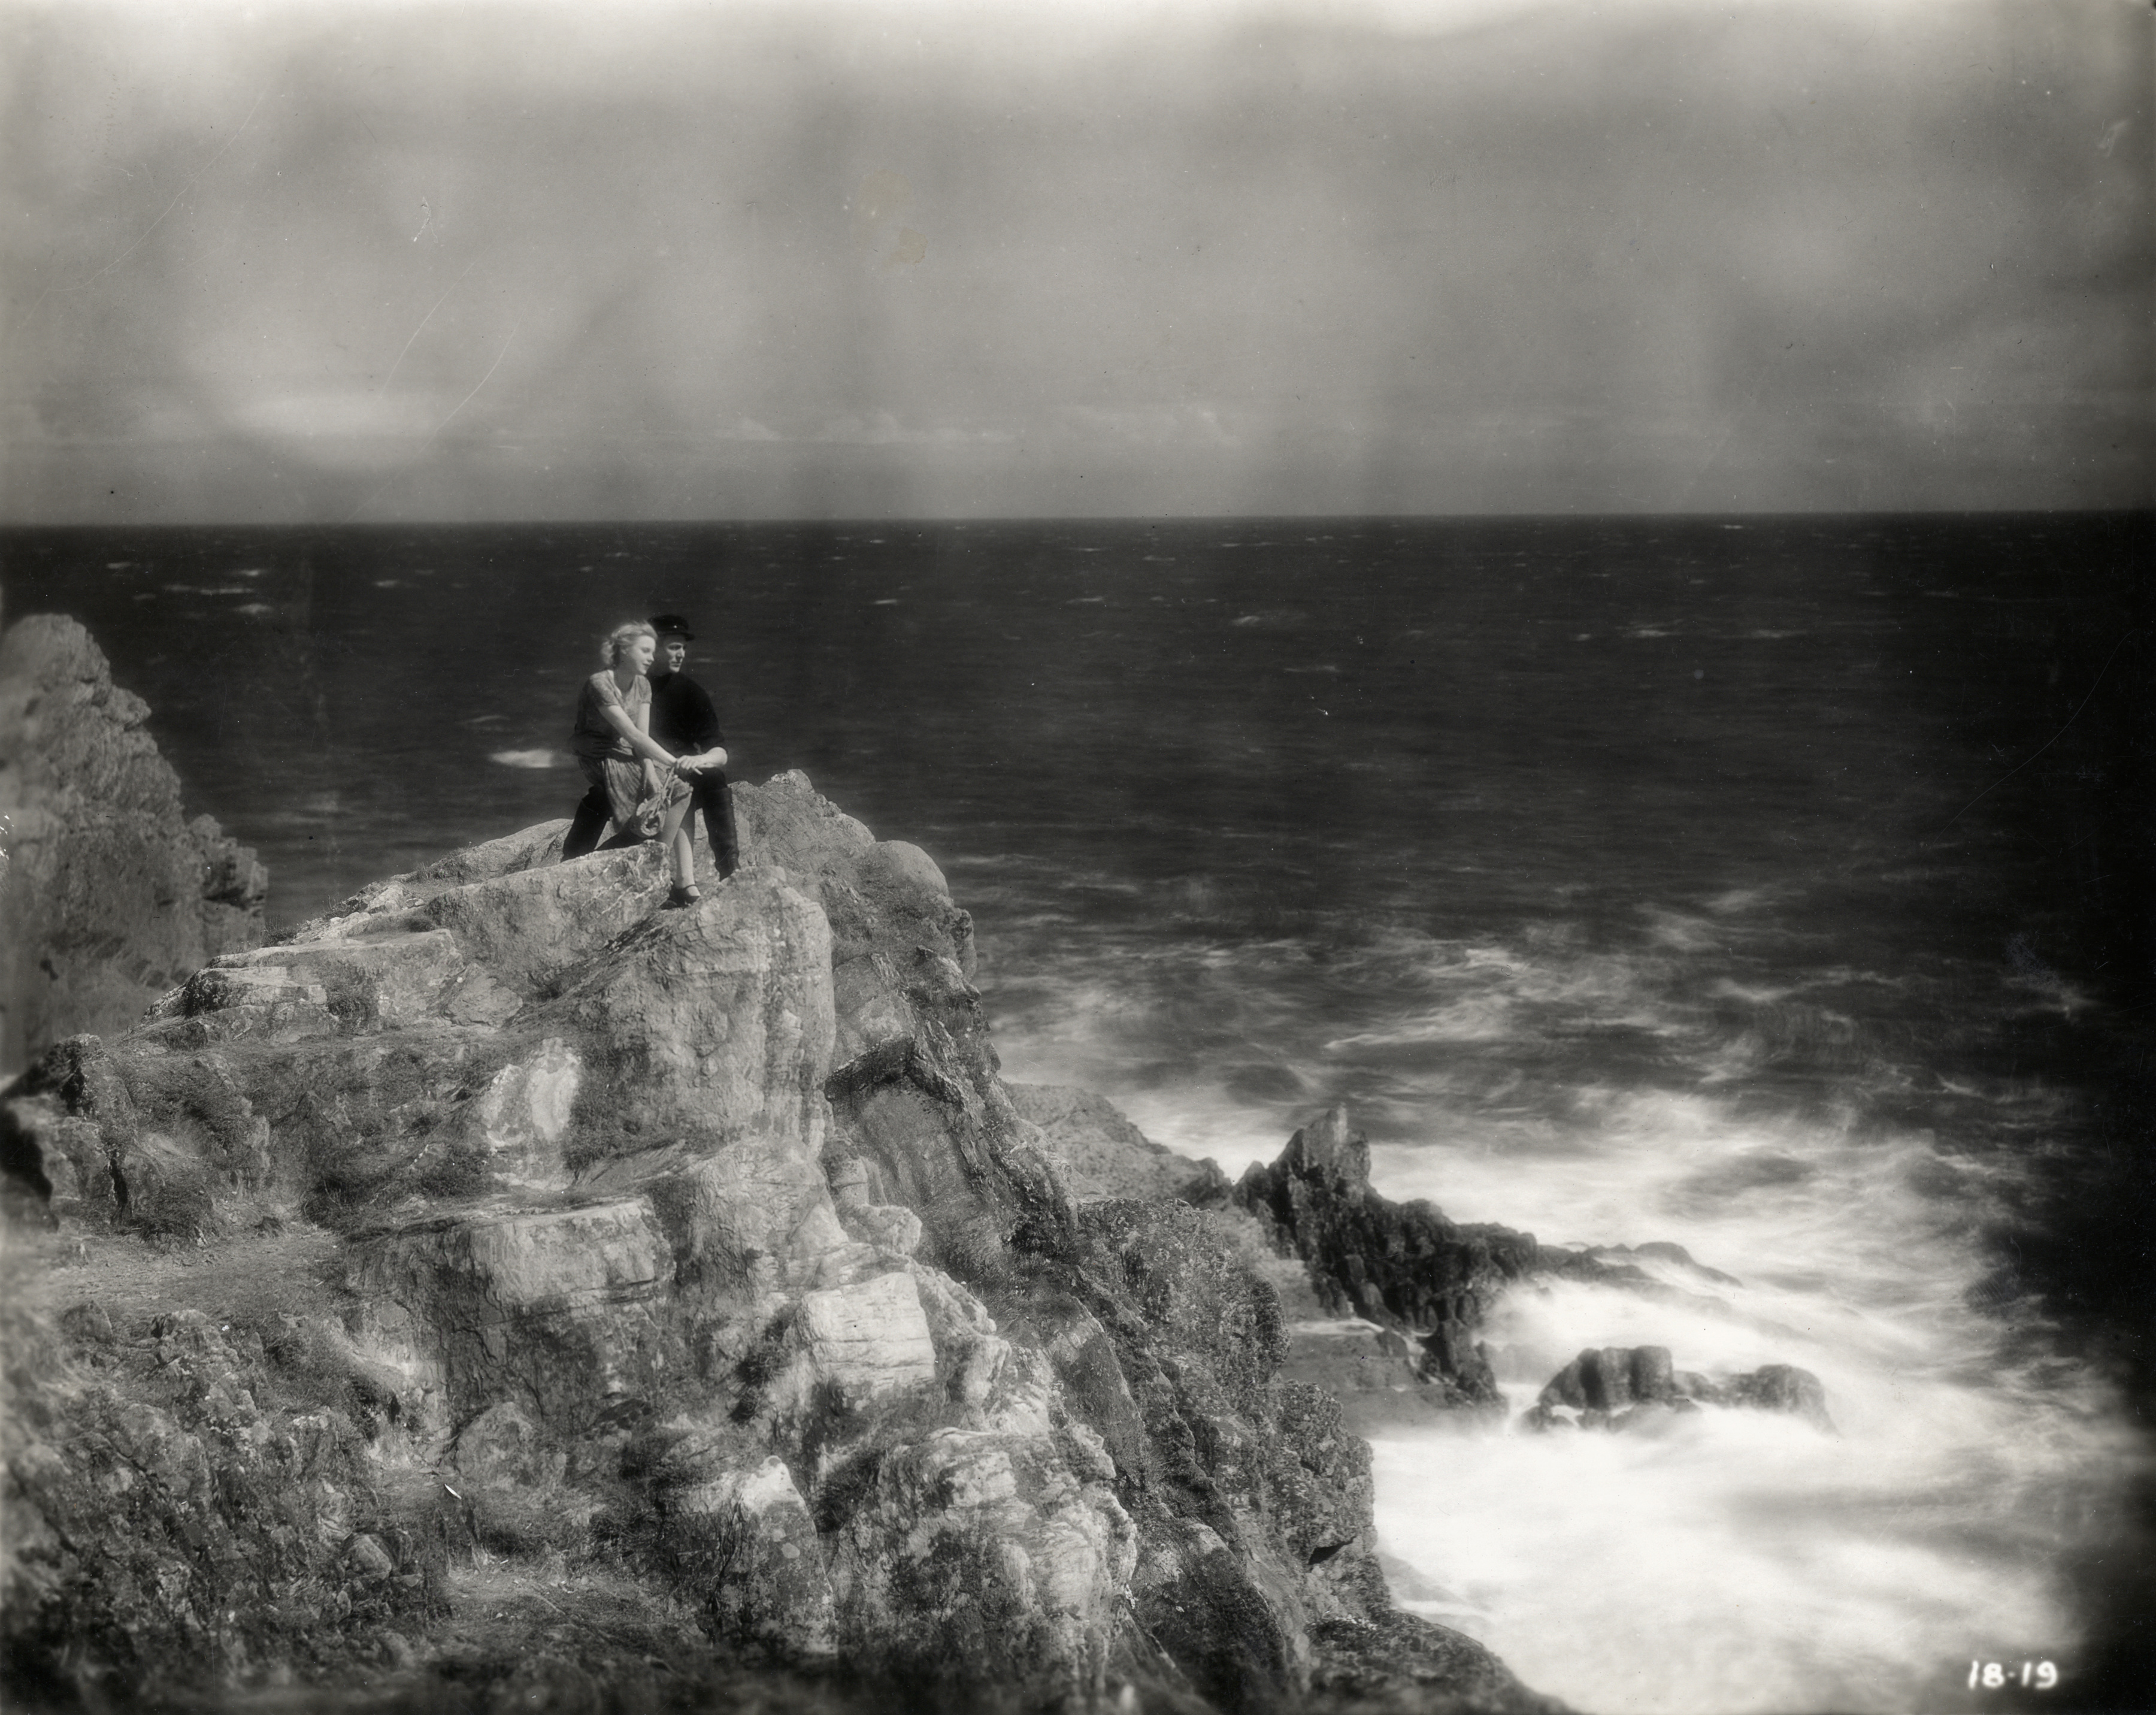 Malcolm Keen and Anny Ondra in The Manxman (1929)